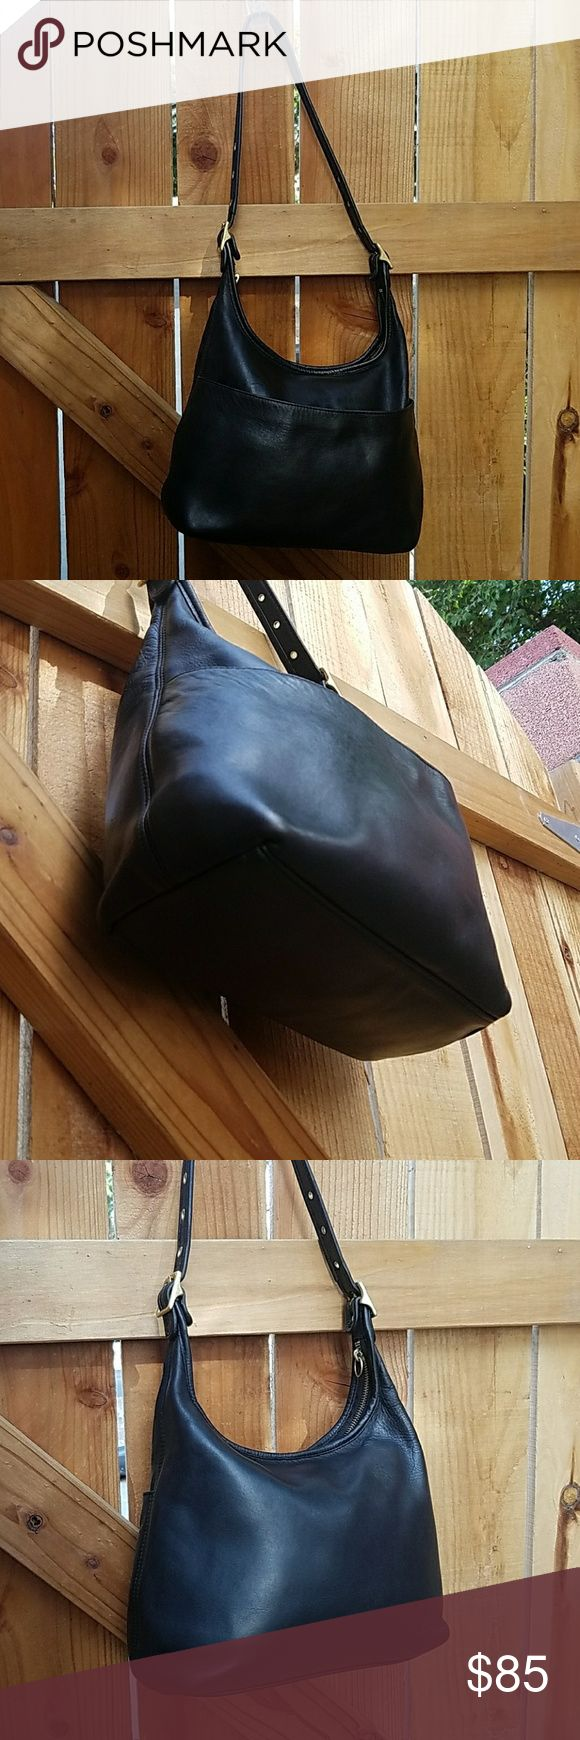 "Vintage Coach Black Leather Legacy Hobo This Legacy collection leather hobo bag with brass hardware is very roomy! Inside zipper pocket. Has a outer pocket for easy access to items like your phone/keys! Strap at longest 25"" Made in USA # KOD-9058  Restored- Cleaned, reshaped, redyed, sealed, conditioned to make as new as possible!  Vintage Coach, Dooney, Frye & other great finds in my closet💕 Coach Bags"